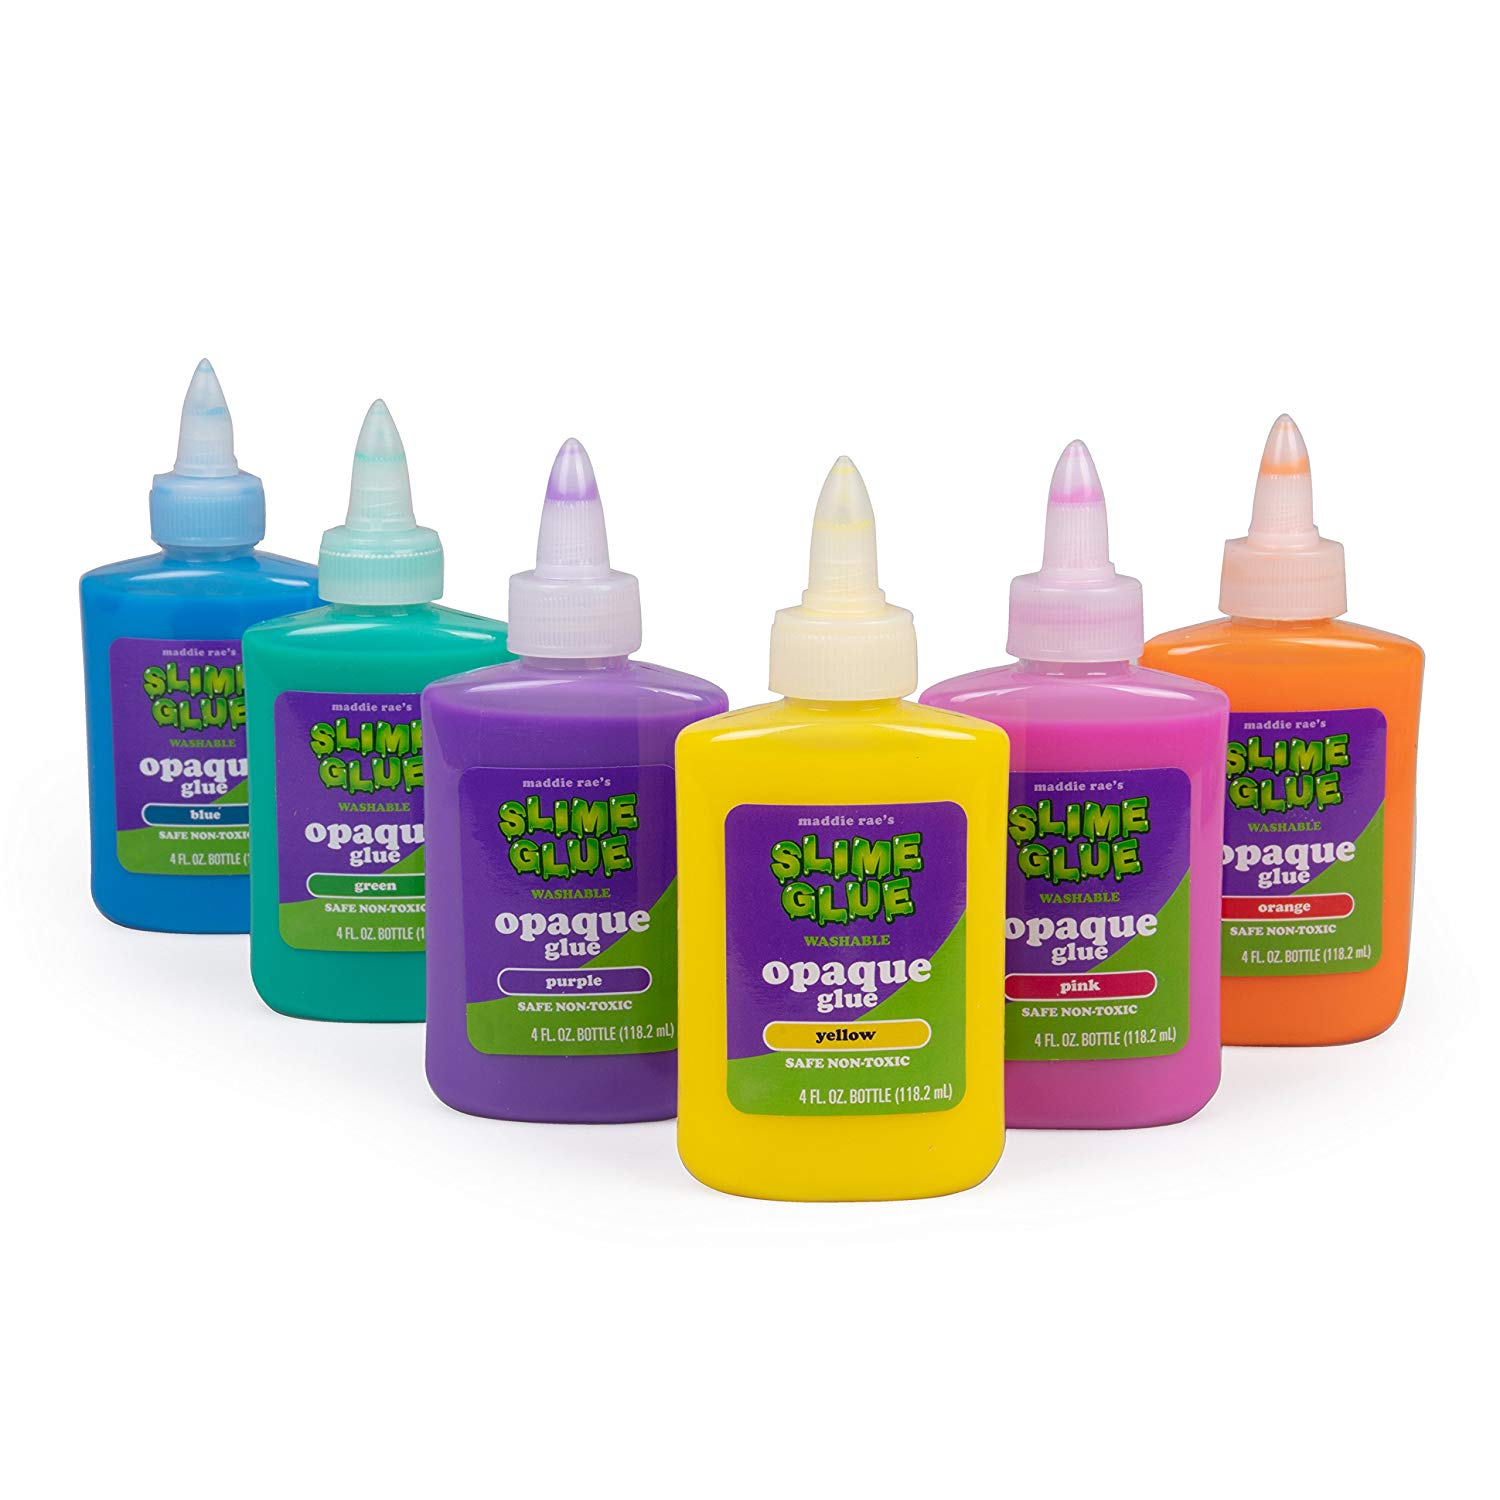 Maddie Rae's Slime Making Opaque Glue - (6) 4oz Bottles, 6 Different Colors - Non Toxic, School Grade Formula for Perfect Slime Crafts